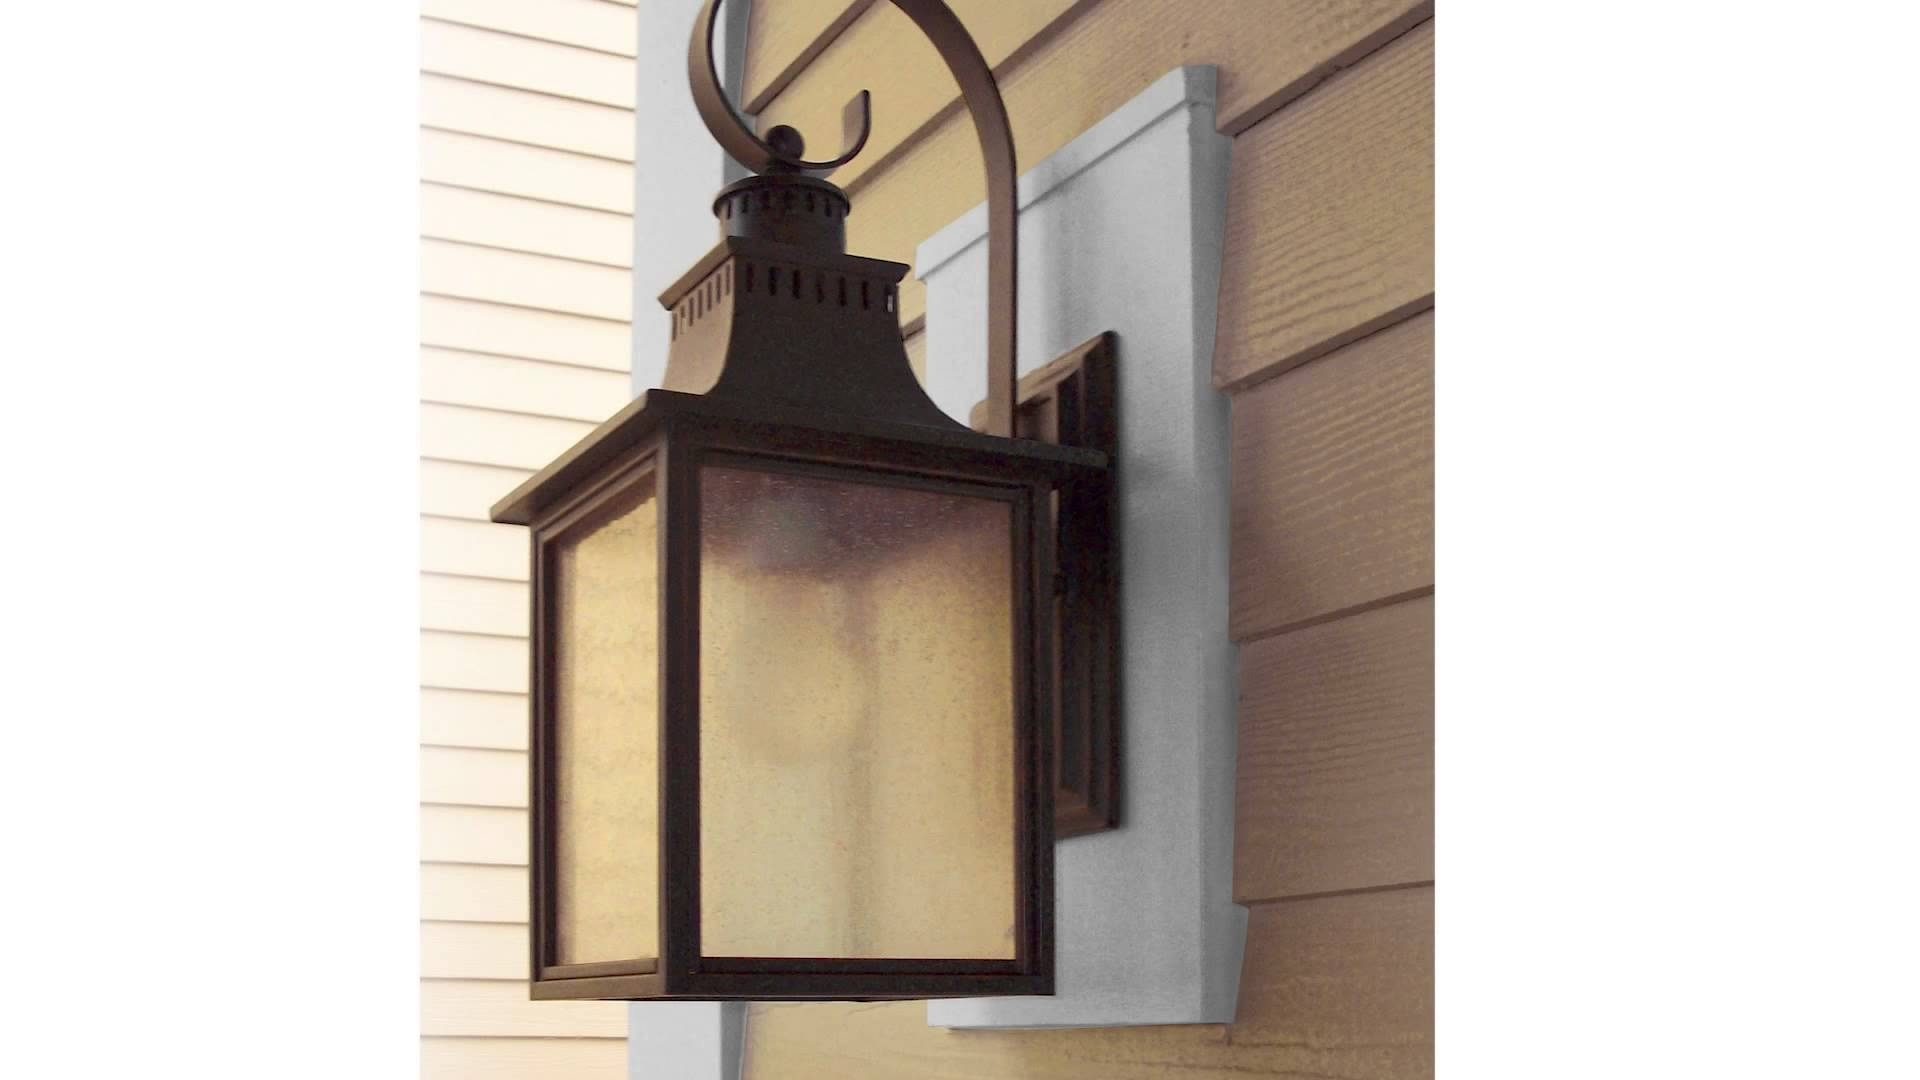 Vinyl Outdoor Wall Lighting Within Most Current Fireplace : Sturdimount Fiber Cement Mounting Blocks Outdoor Light (Gallery 6 of 20)